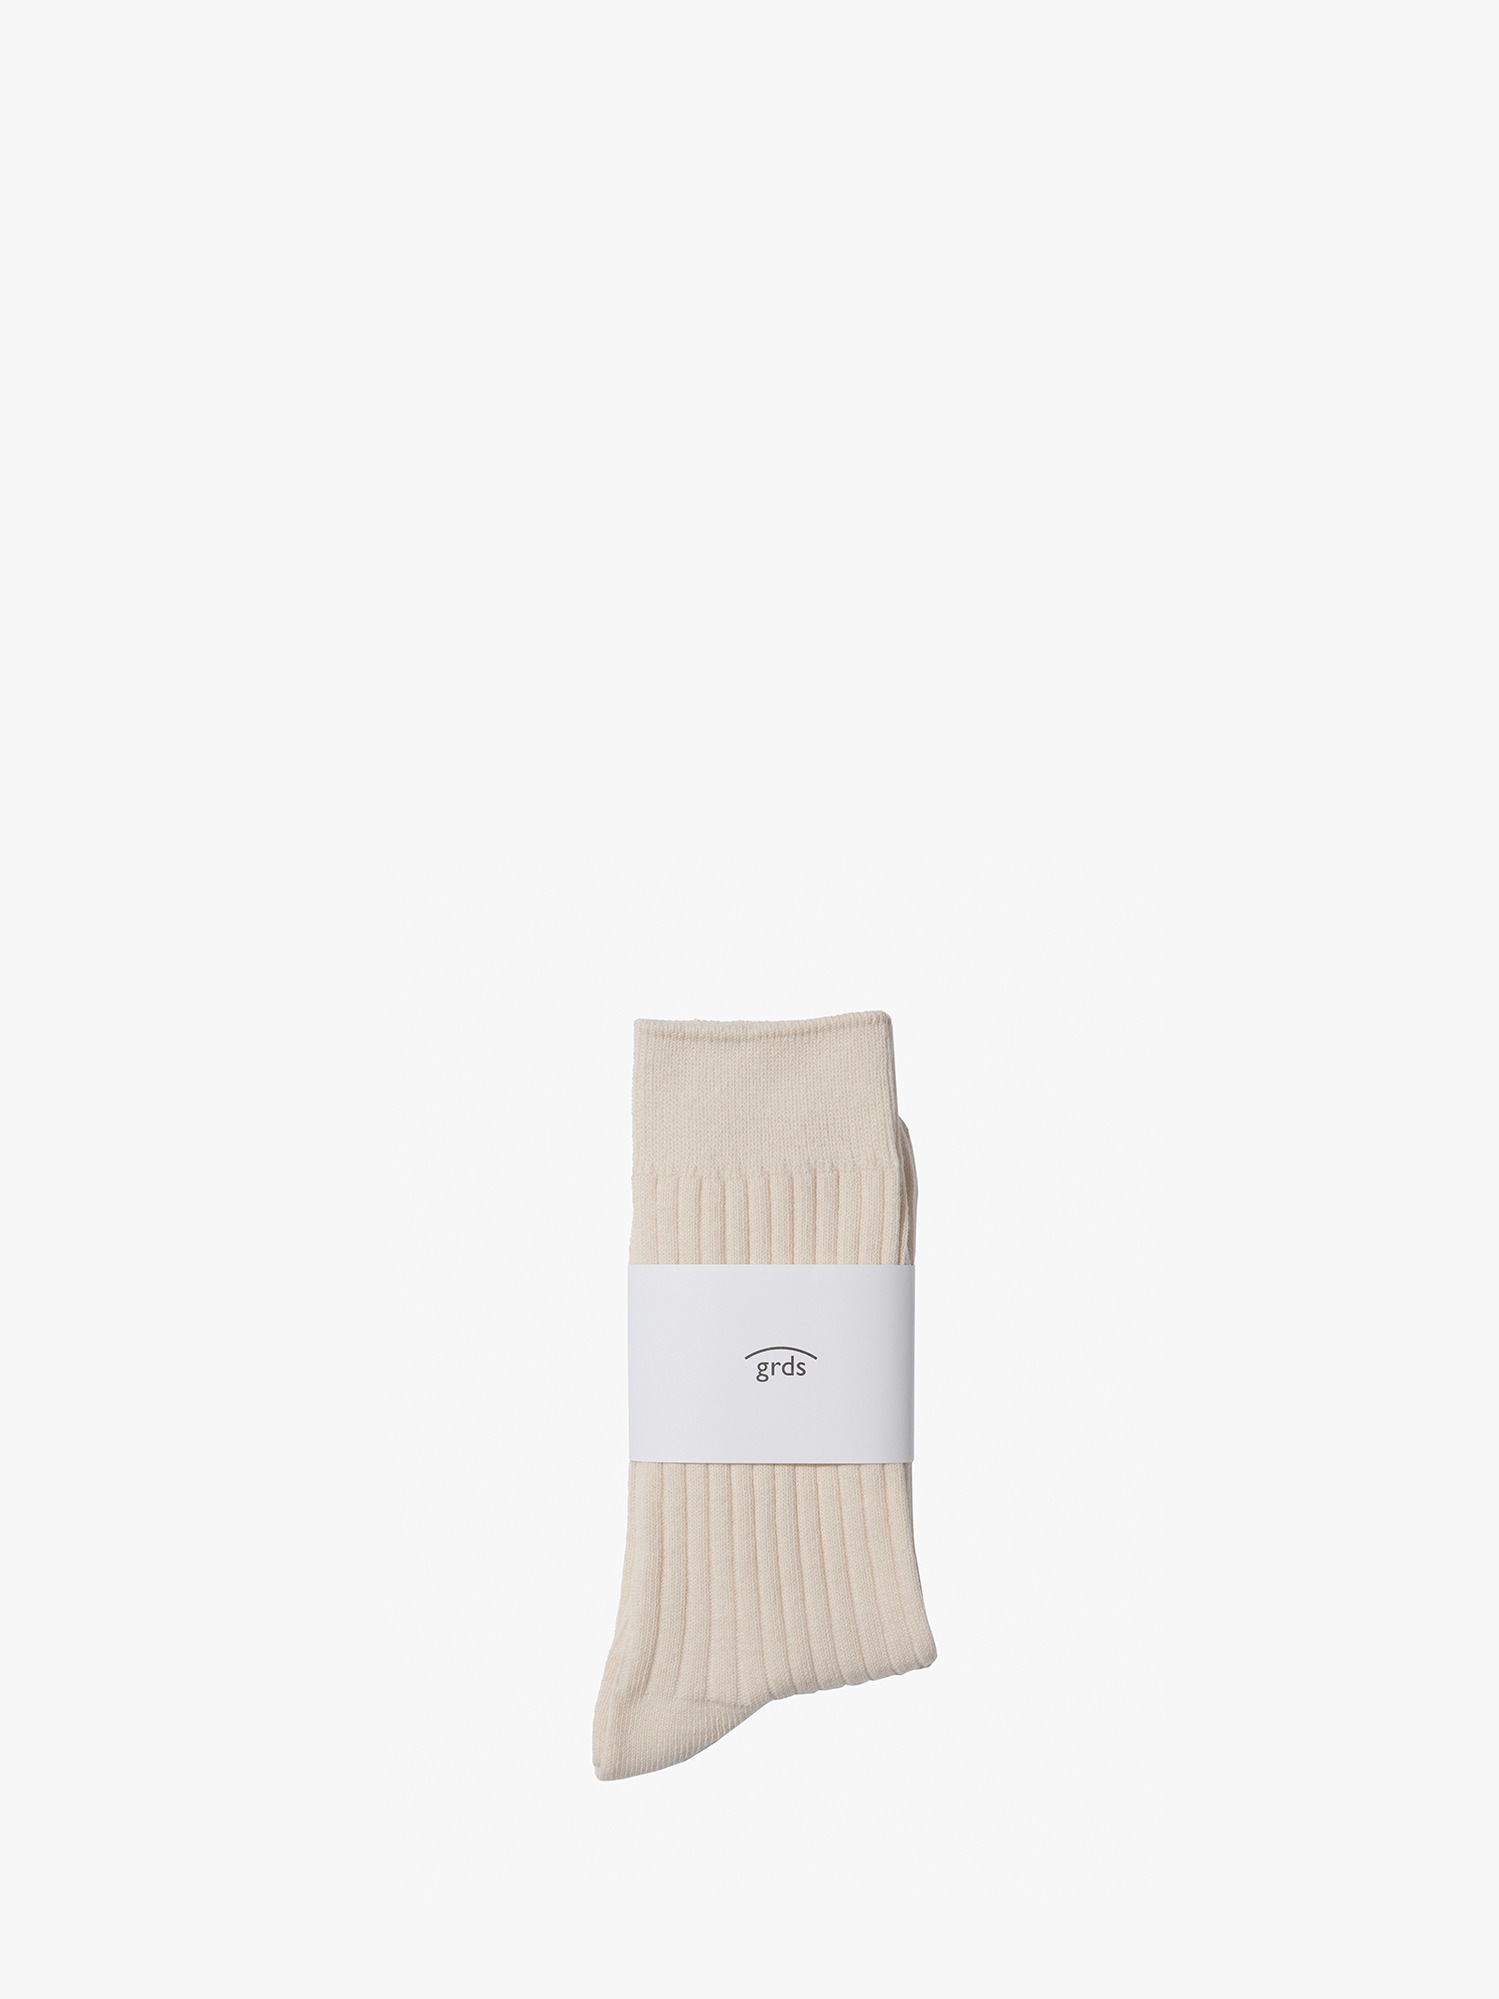 grds ribbed socks ivory